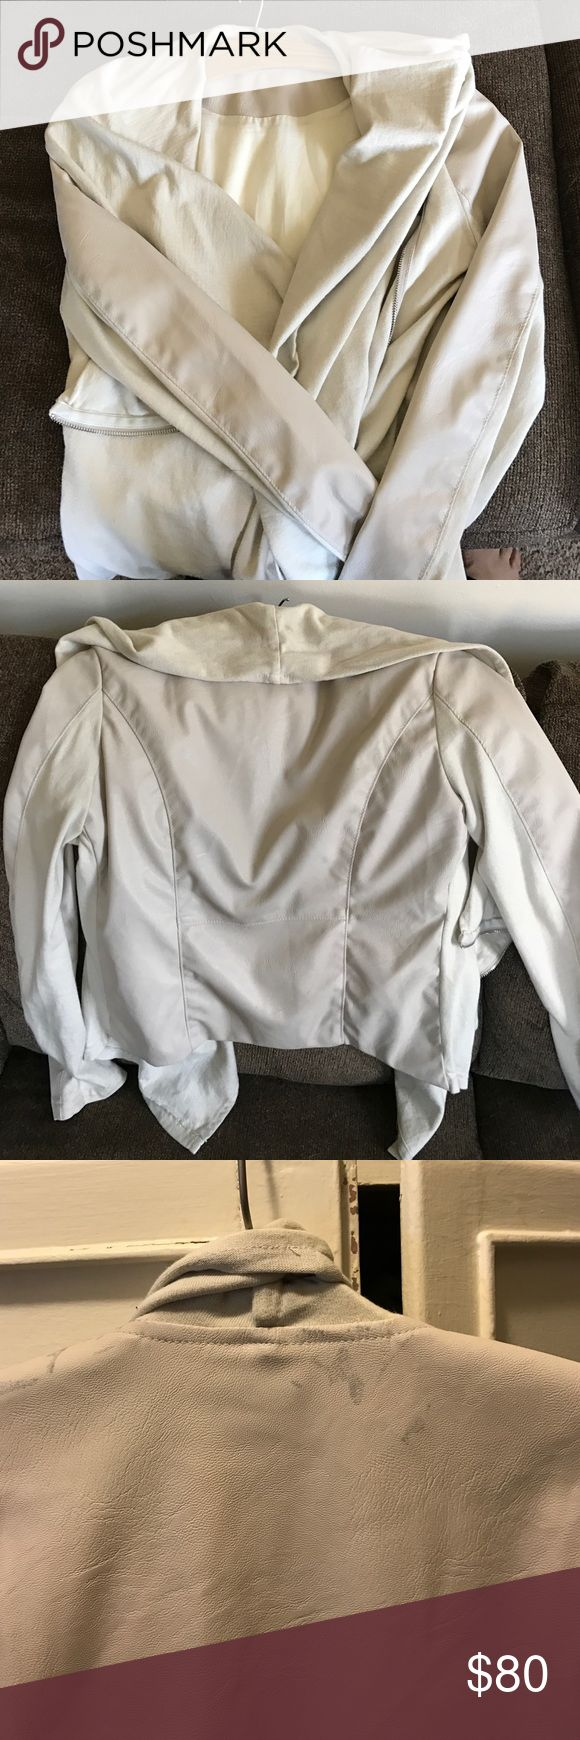 Blank Denim Cream Vegan leather jacket Worn once. Some spotting under the shawl collar on the back side that is not noticeable with the collar. Beautiful warm and soft cream color with cowl/shawl/waterfall opening and faux leather detail Blank Denim Jackets & Coats